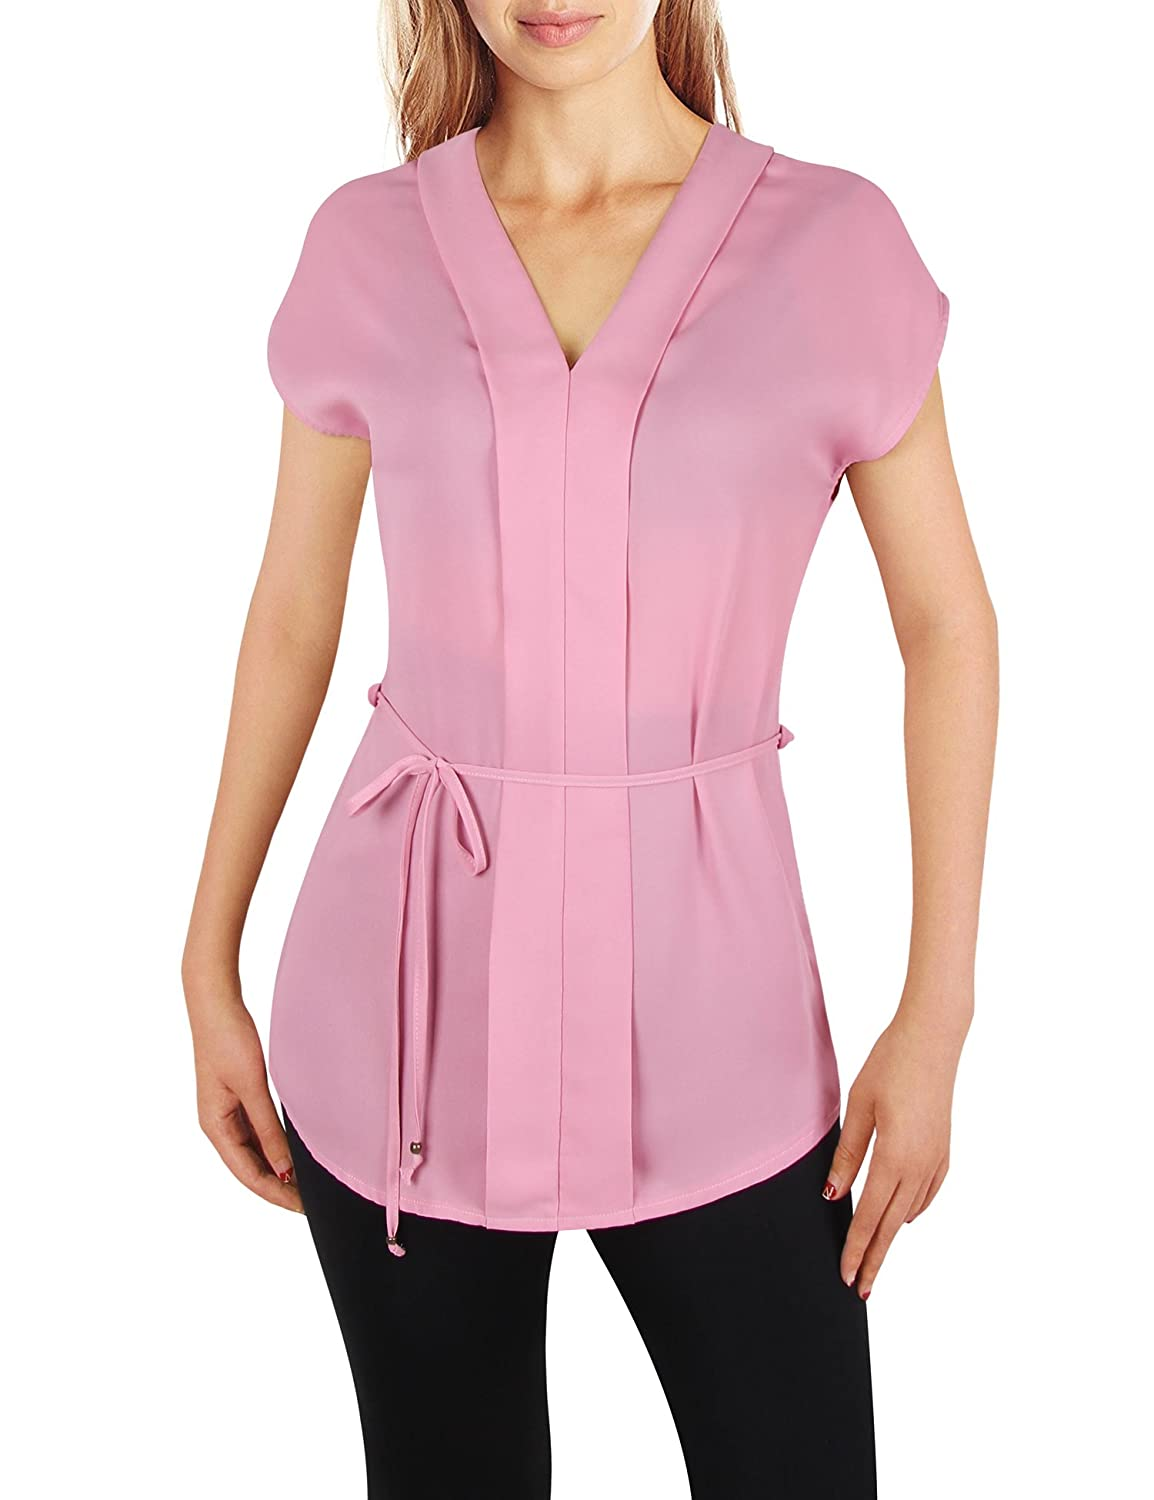 96dd7139ca22e Chiffon tunic blouse with detachable waistband and there has belt loops on  both sides. Recommend wear a camisole or tube top underneath